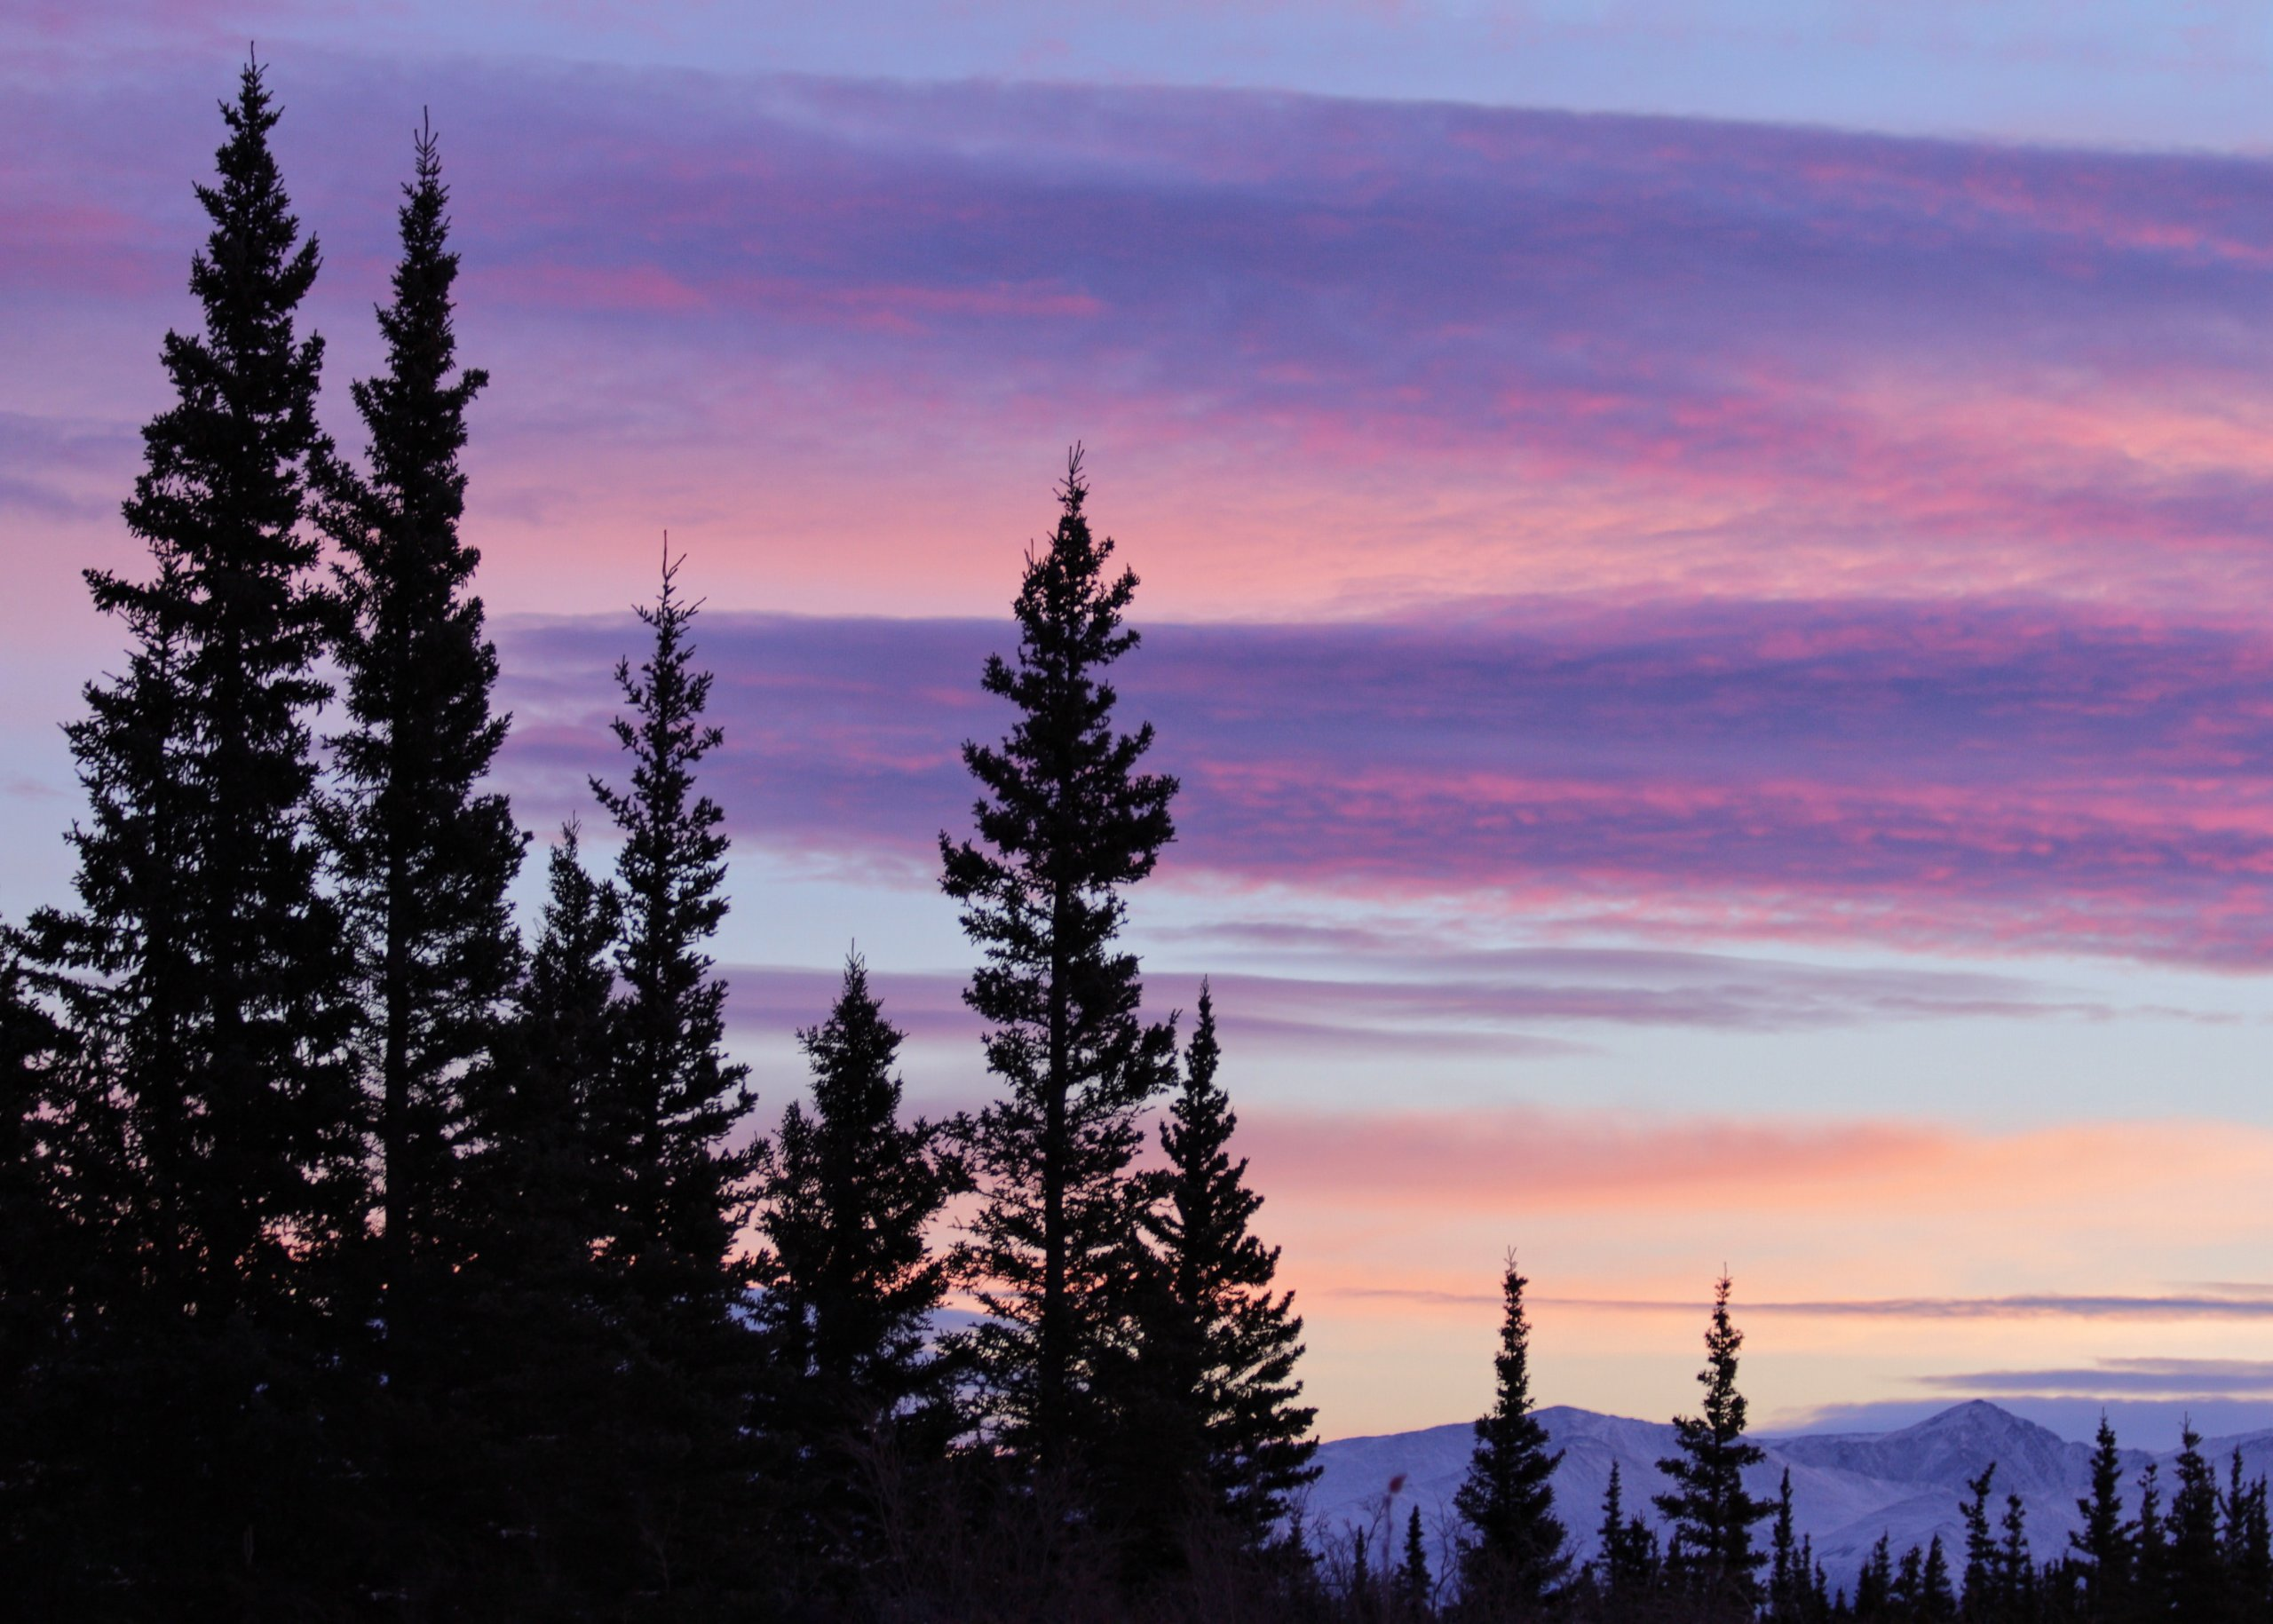 A pink, purple, and peach morning sunrise sky illuminate the winter mountains and tall spruce trees